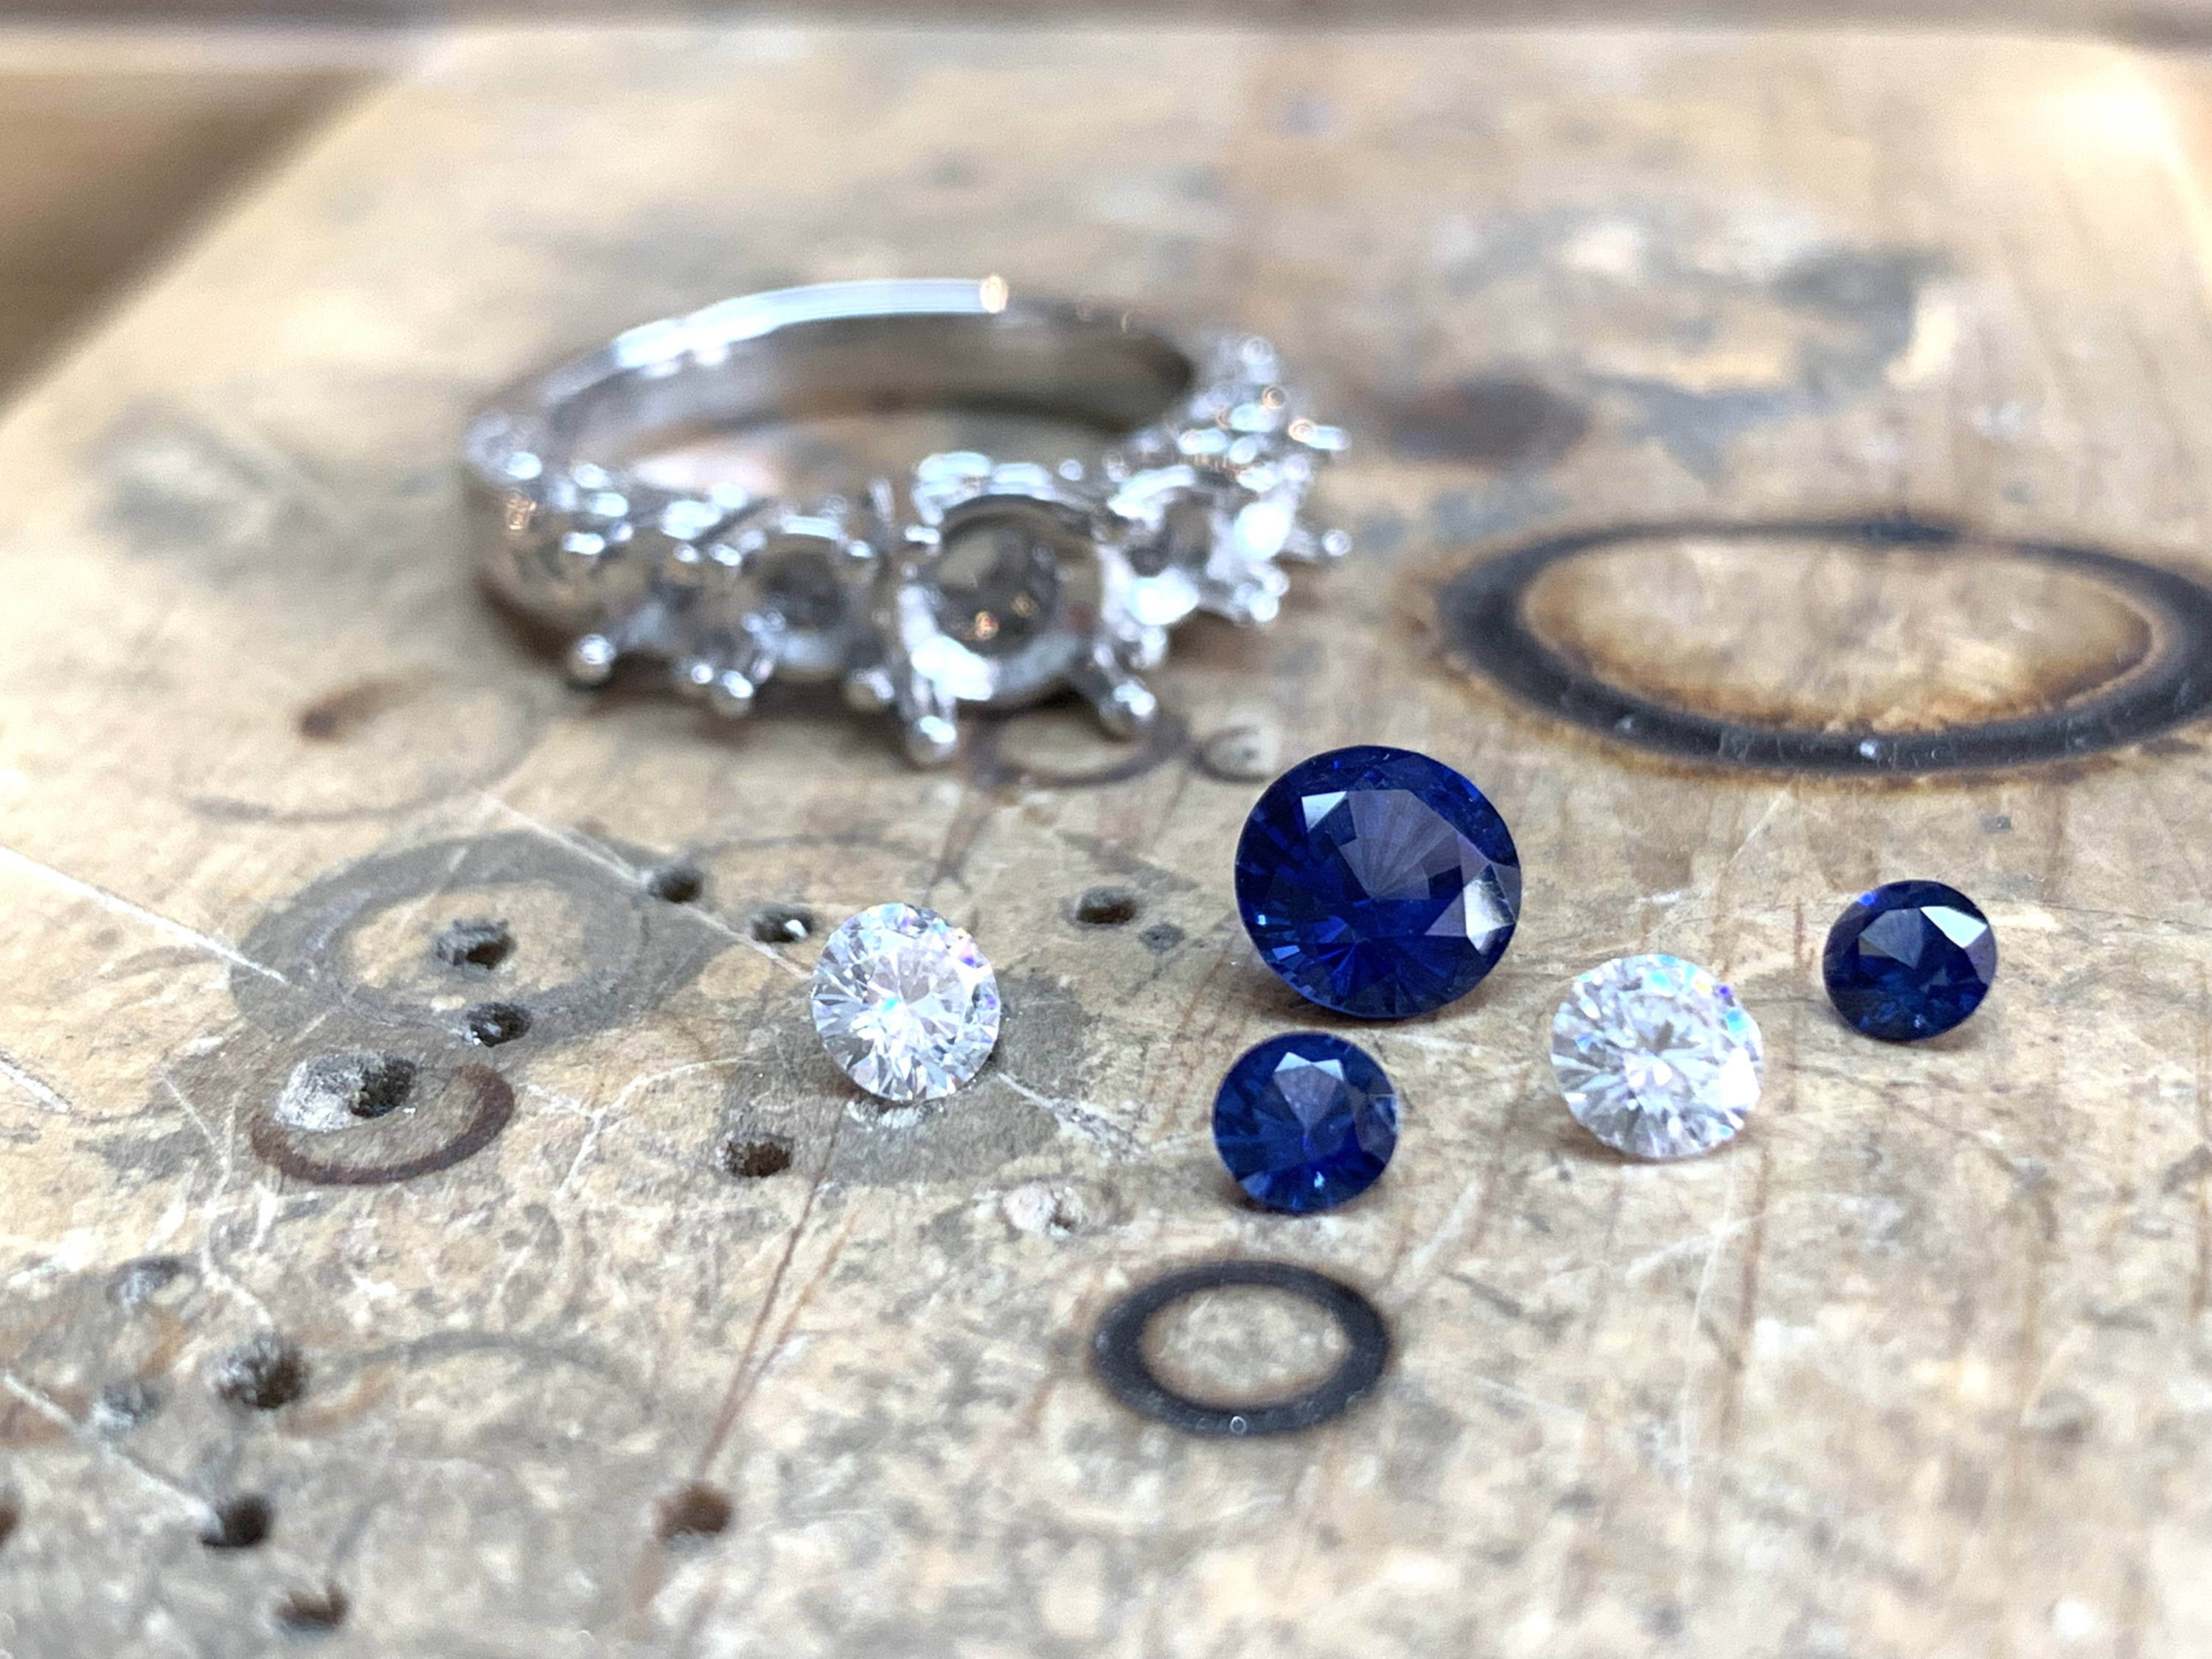 Sapphire and Moissanite Ring in process